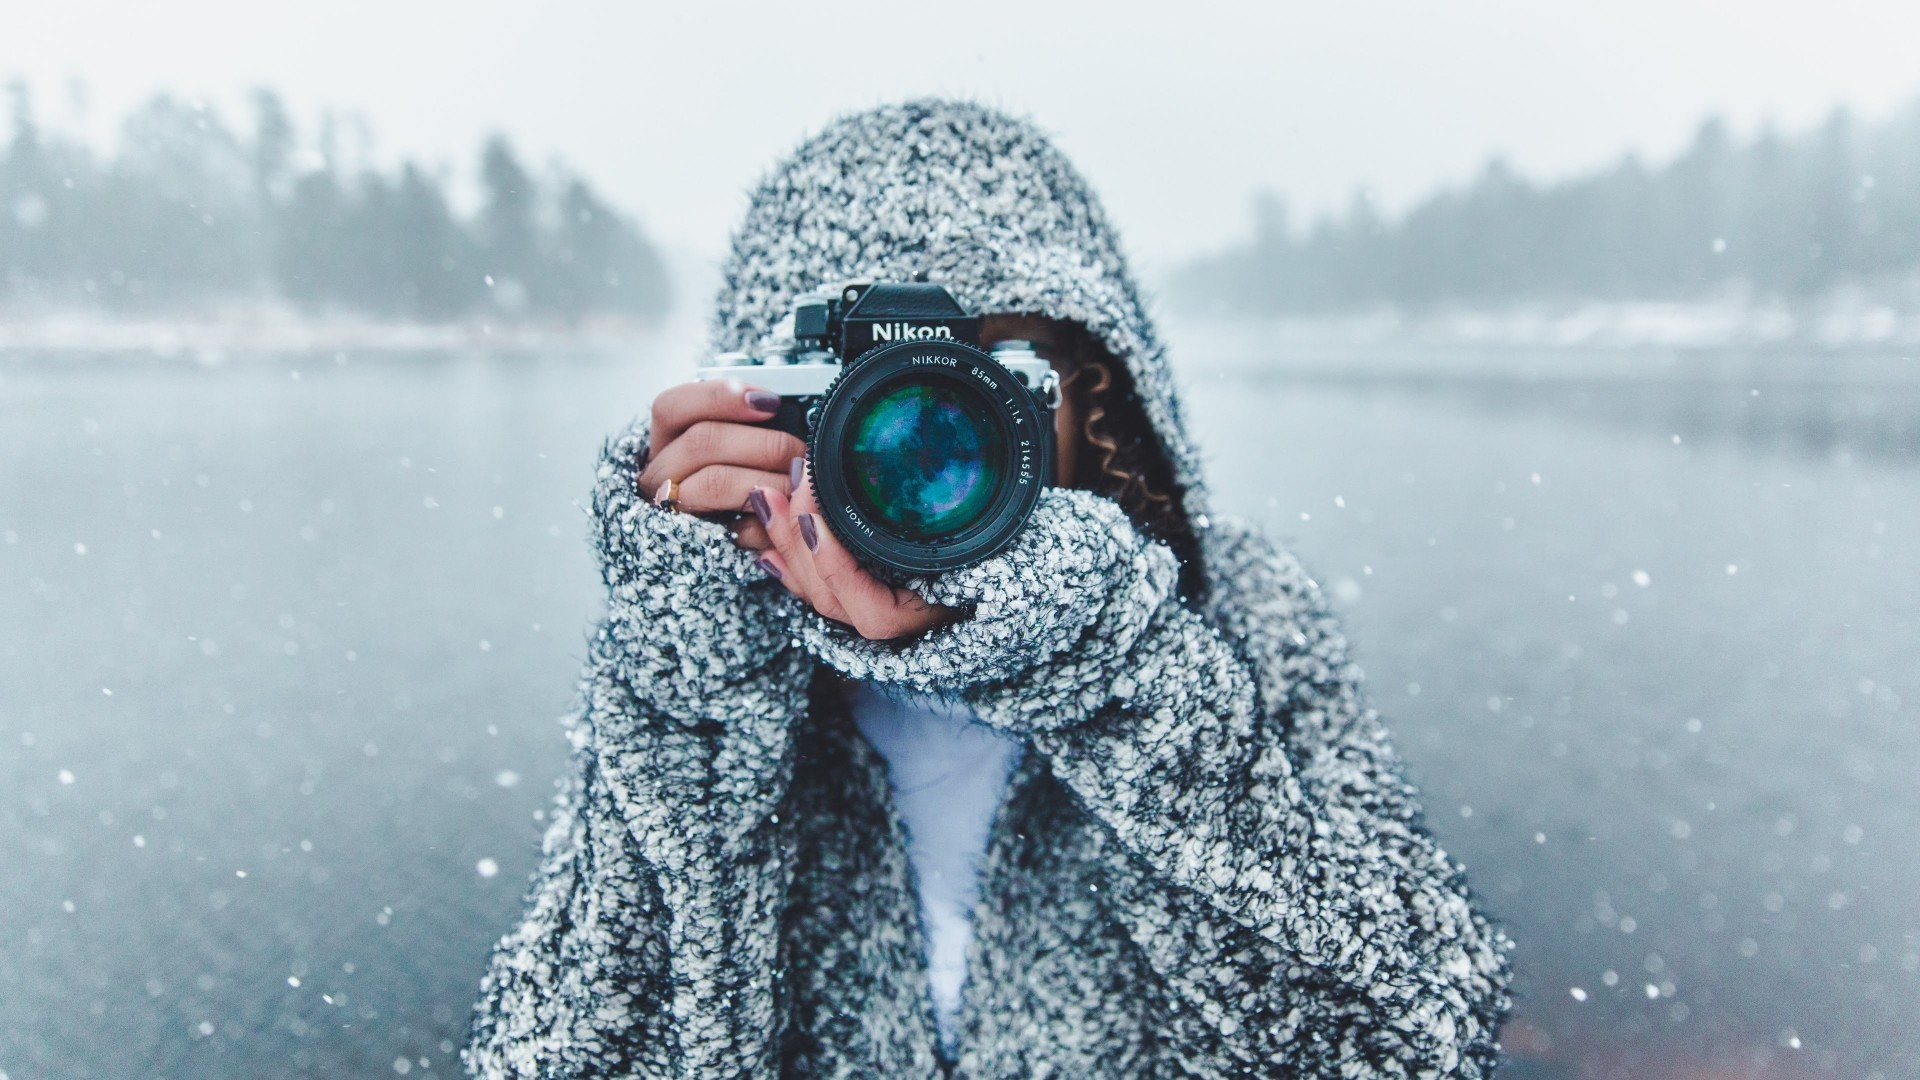 photographer hoodie nikon camera snow girl